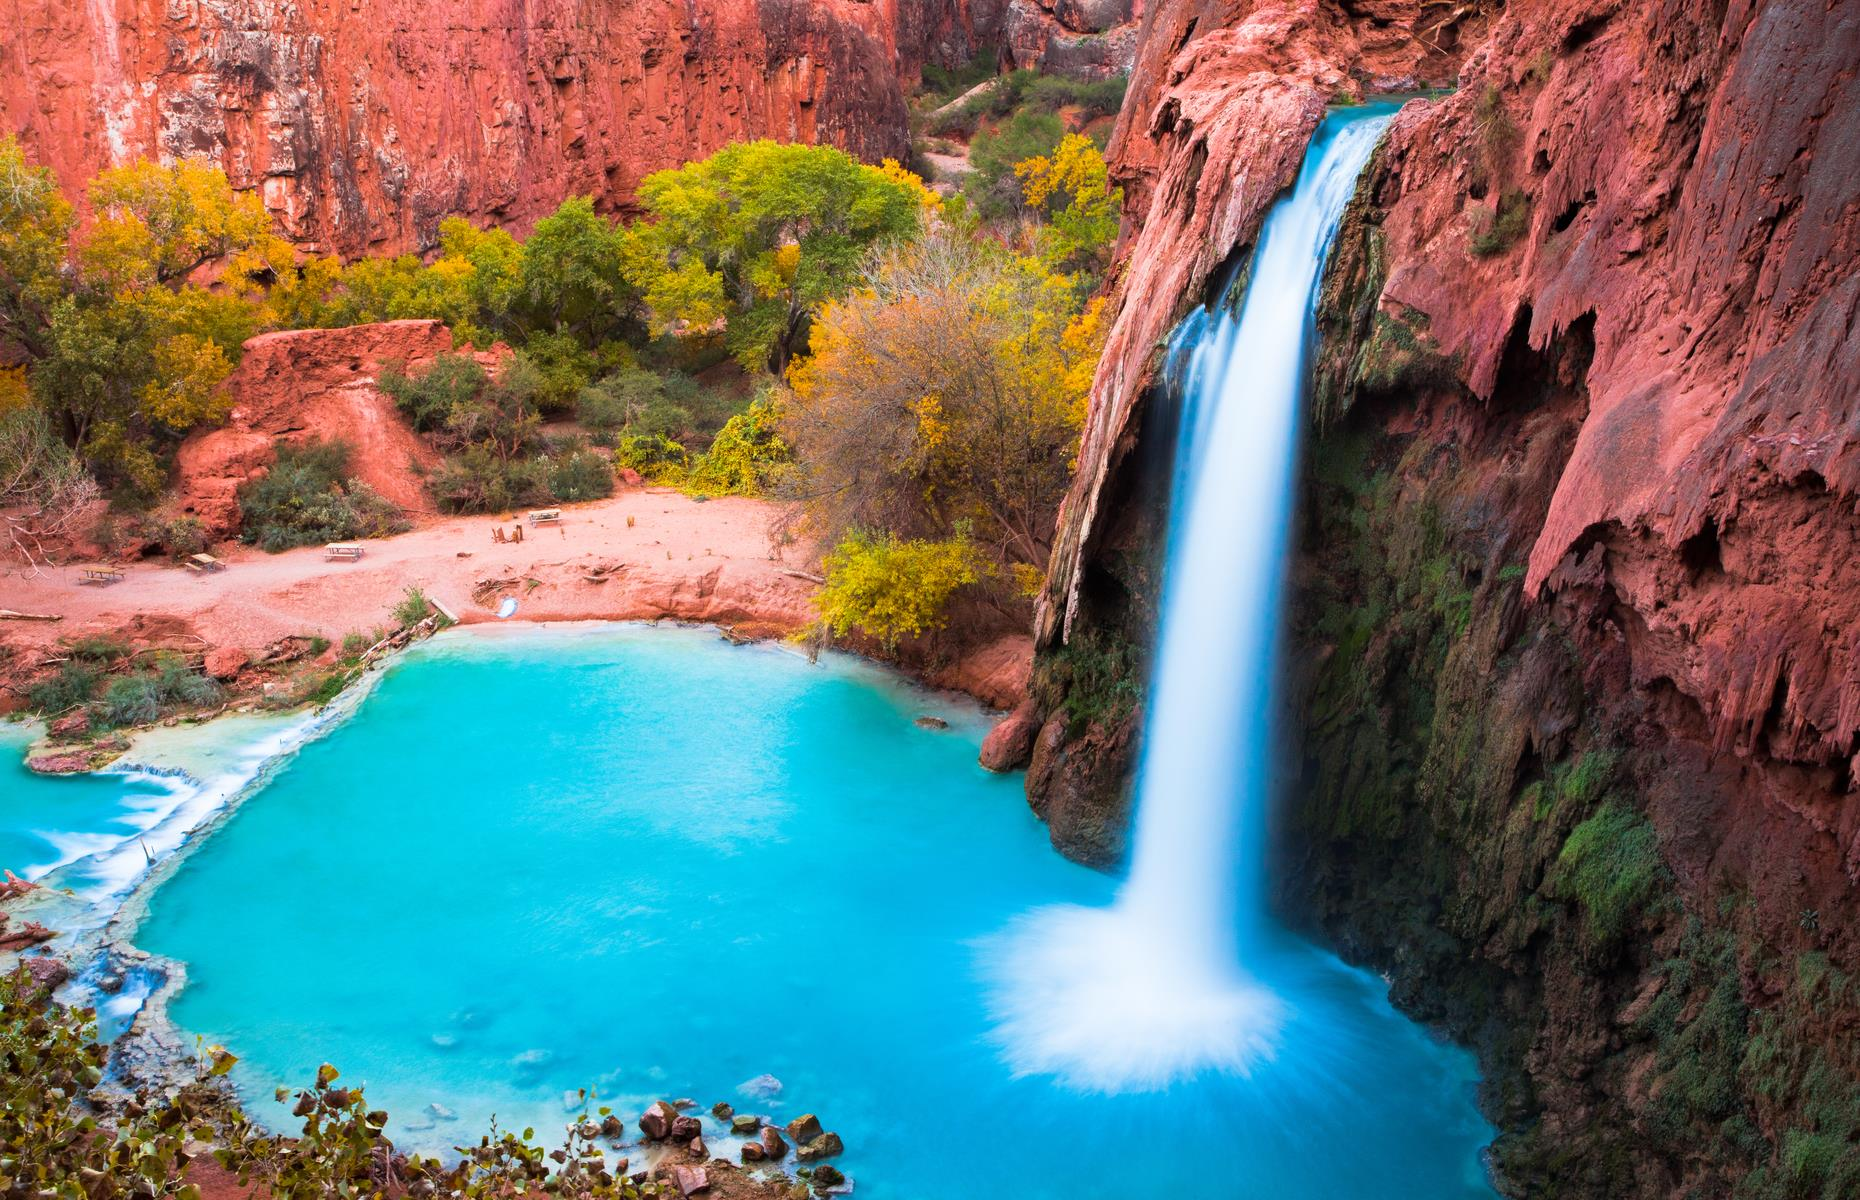 Slide 54 of 61: It's hard to believe that this secluded slice of America's backyard exists within the Grand Canyon (the second most-visited national park in the US). But it does. The Havasupai Tribe have lived in the village of Supai since AD 1300 and, in part down to the arduous eight-mile (12.8km) trek it takes to reach it, the area has stayed largely off the tourist radar. Those who commit to the hardy hike will be rewarded with waterfalls plunging towards eye-popping blue pools reminiscent of Turkey's Pamukkale. Visits are currently suspended due to COVID-19 with more information available here.